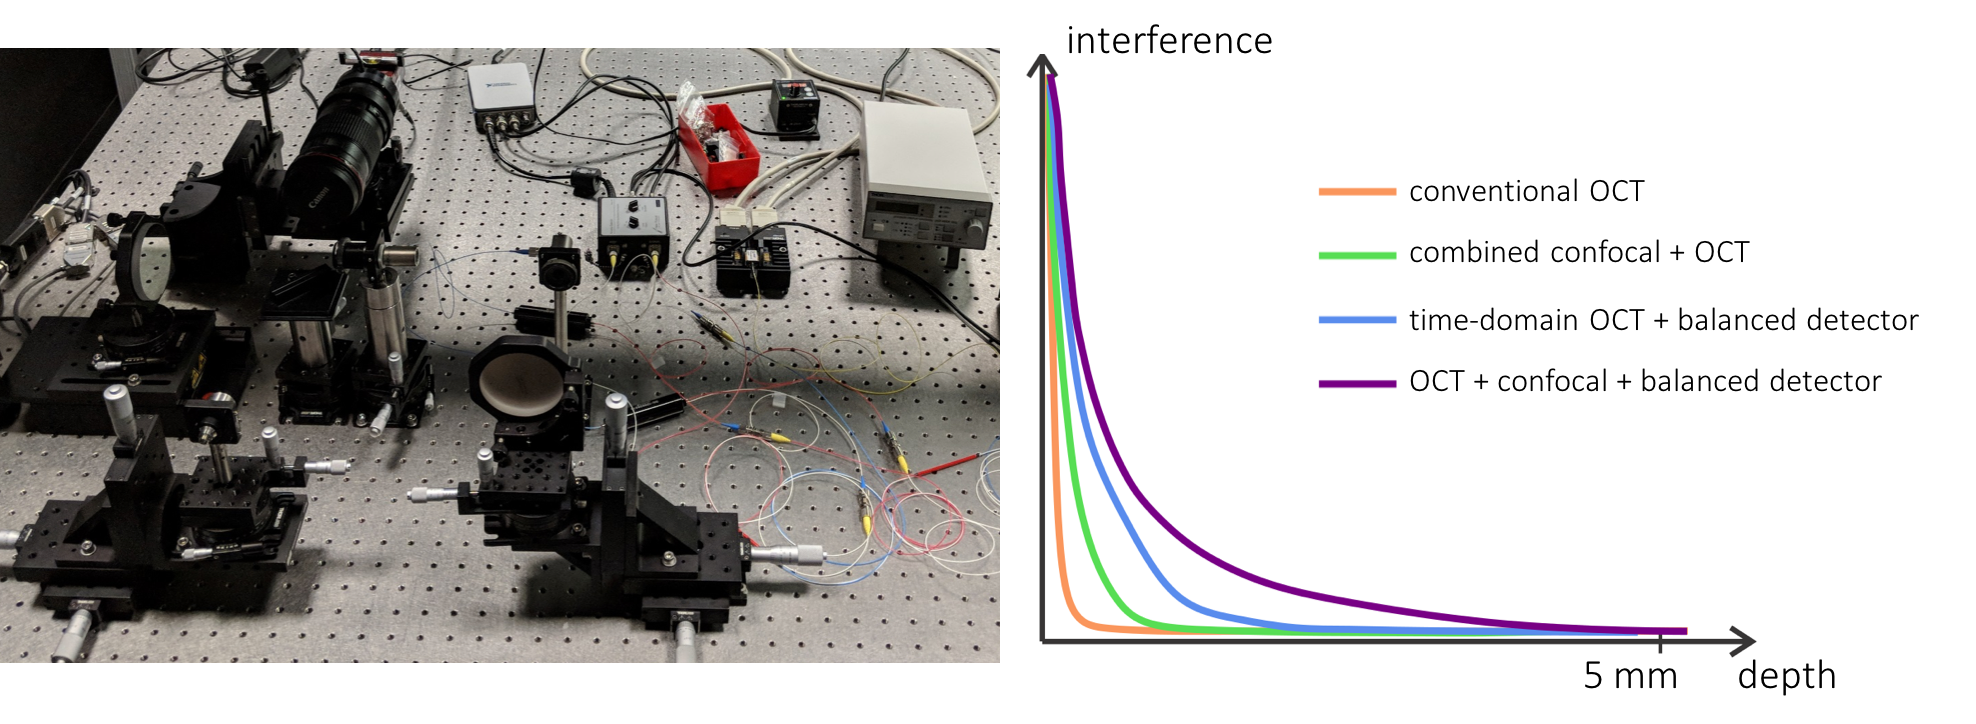 Prototype fiber-interferometric imaging system, using a balanced detector, and combining optical coherence tomography, confocal imaging, and epipolar probing (left); measurements of optically thick homogeneous scattering sample (density σt = 100 mm-1) with different configurations of our system (right).